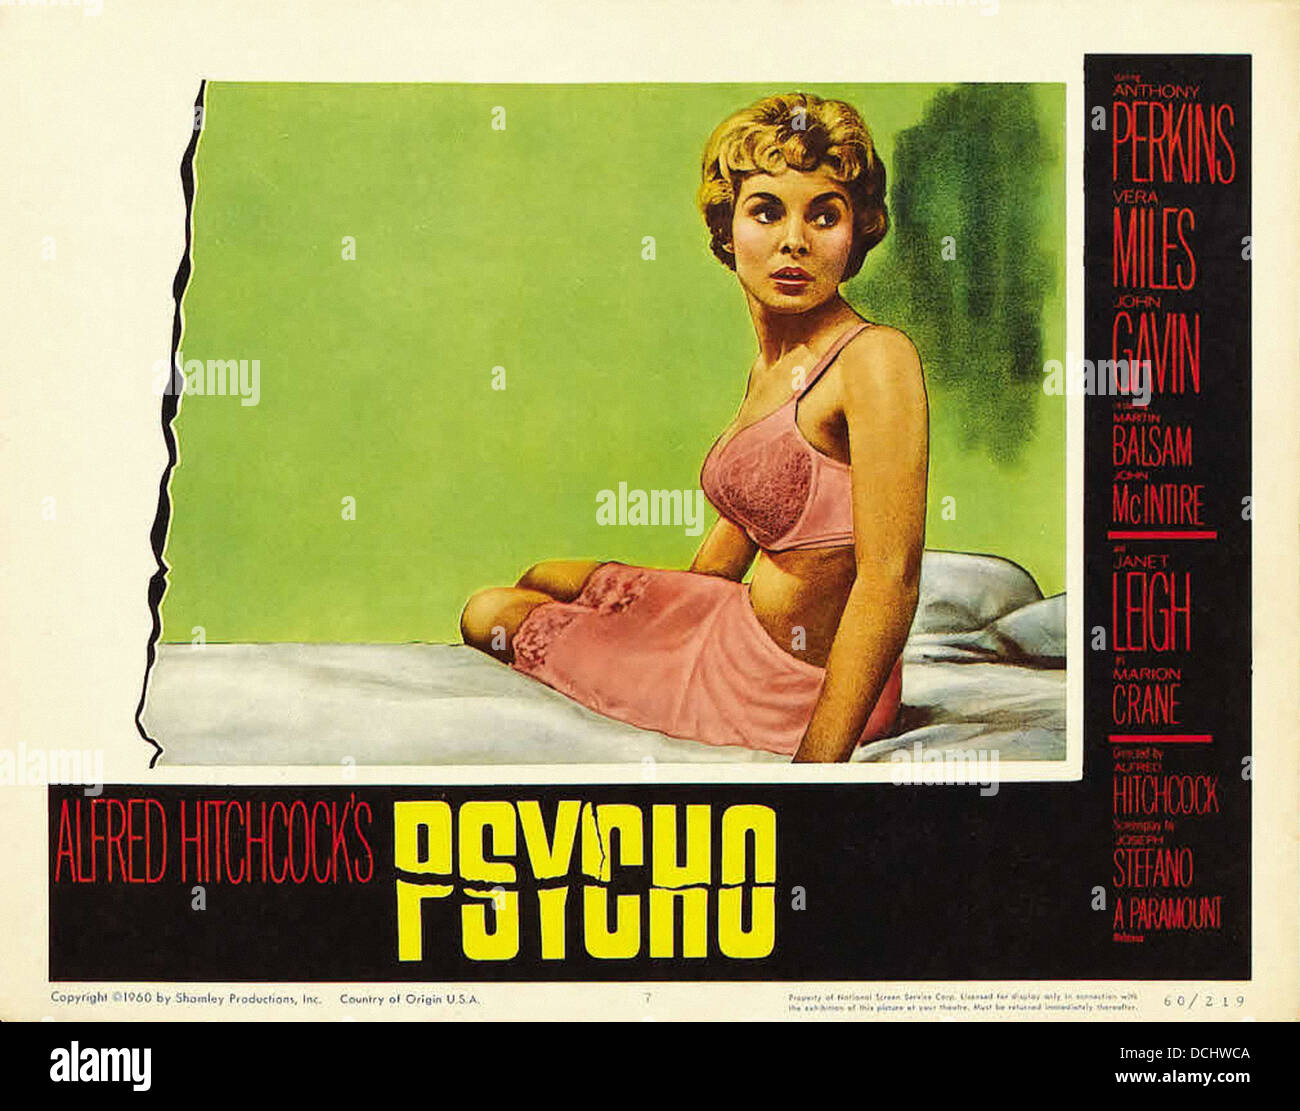 PSYCHO MOVIE POSTER Directed by Alfred Hitchcock. Paramount 1960. - Stock Image